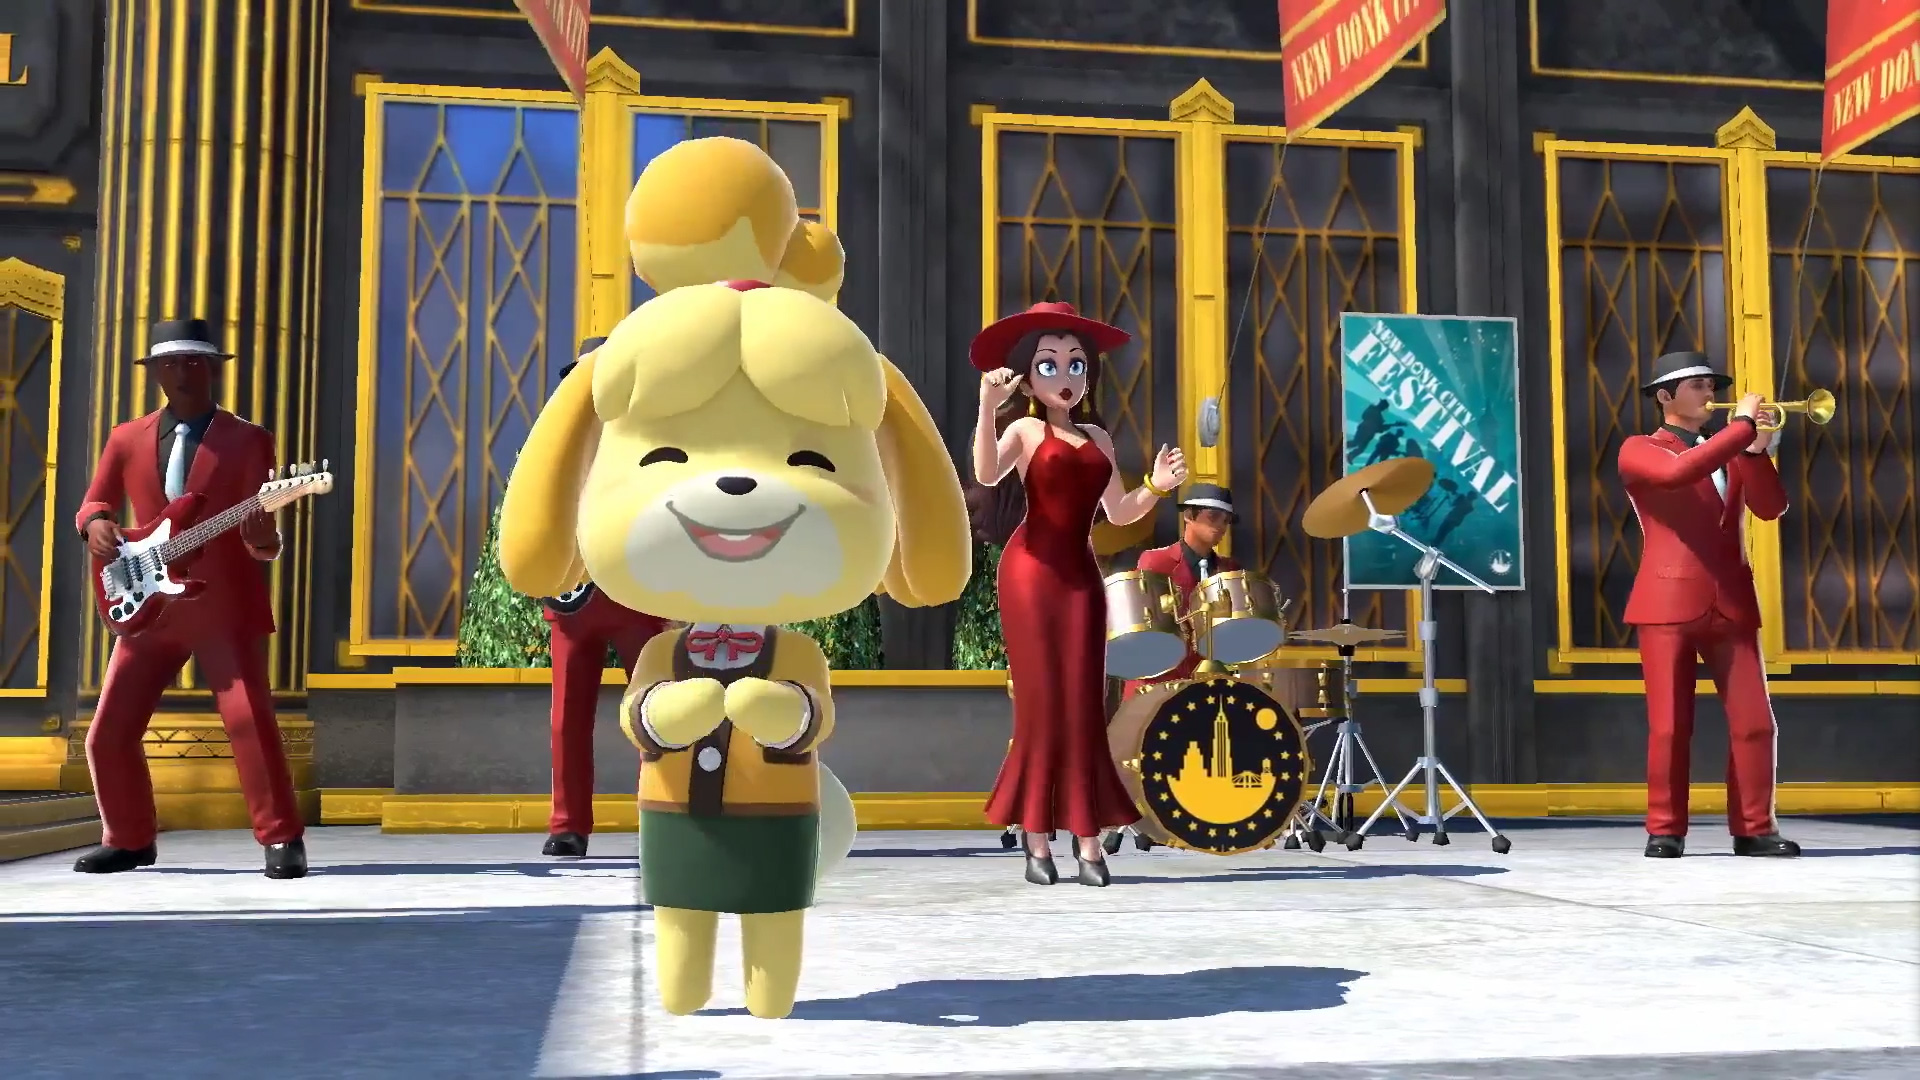 isabelle is coming to smash bros and a new animal crossing in 2019